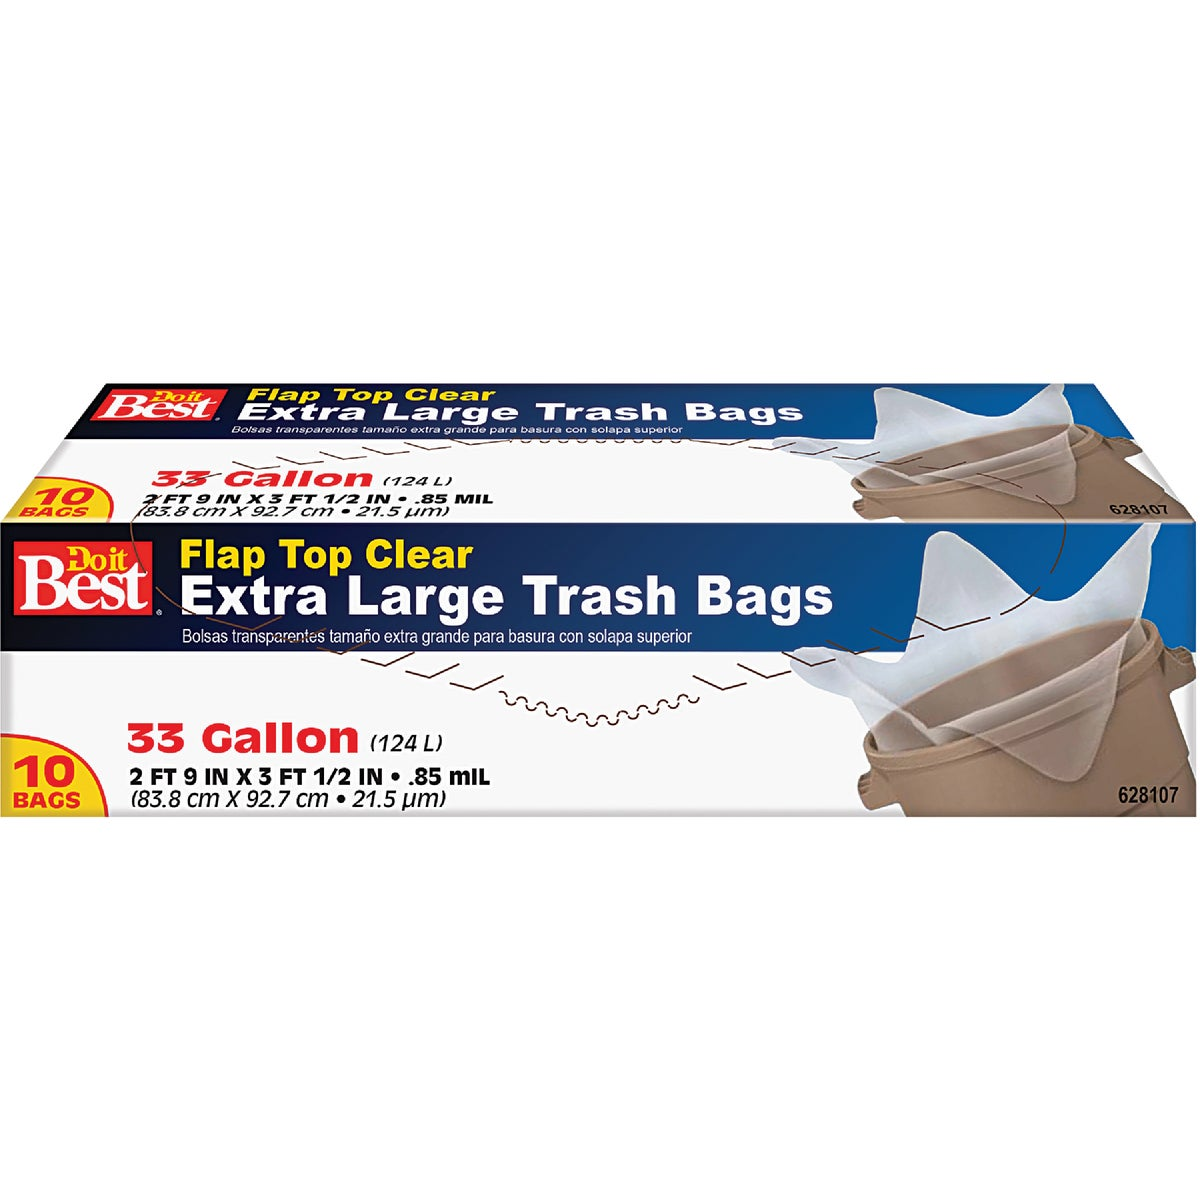 10CT 33GAL TRASH BAG - 628107 by Presto Products